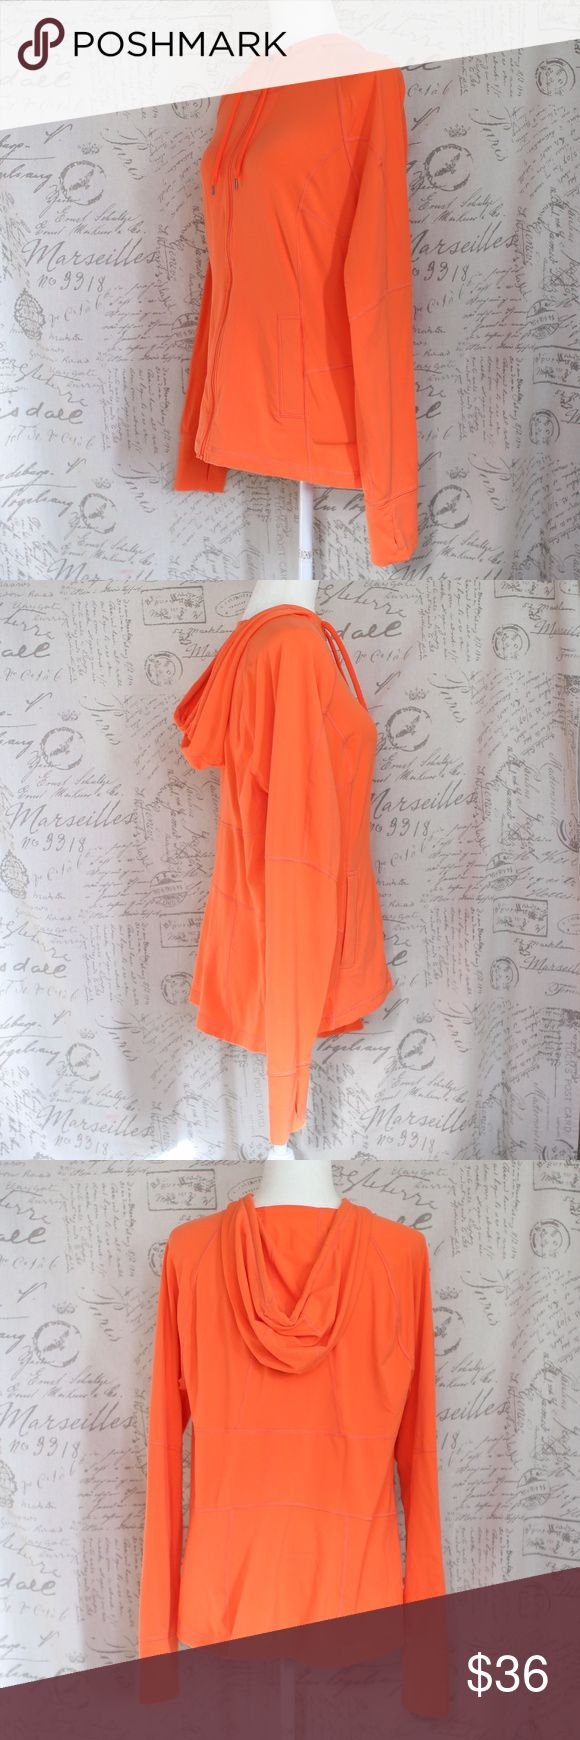 """Lucy Athletic  Orange Stretchy Zip Jacket XL Lucy Athletic  Orange  Stretchy fabric  Two pockets Thumbhole Sleeves Drawstring Hood Extra Large  Measurements taken with garment flat on table. Armpit to armpit: 20"""" Sleeves: 31"""" measured from collar hem Length: 25"""" Lucy Jackets & Coats"""